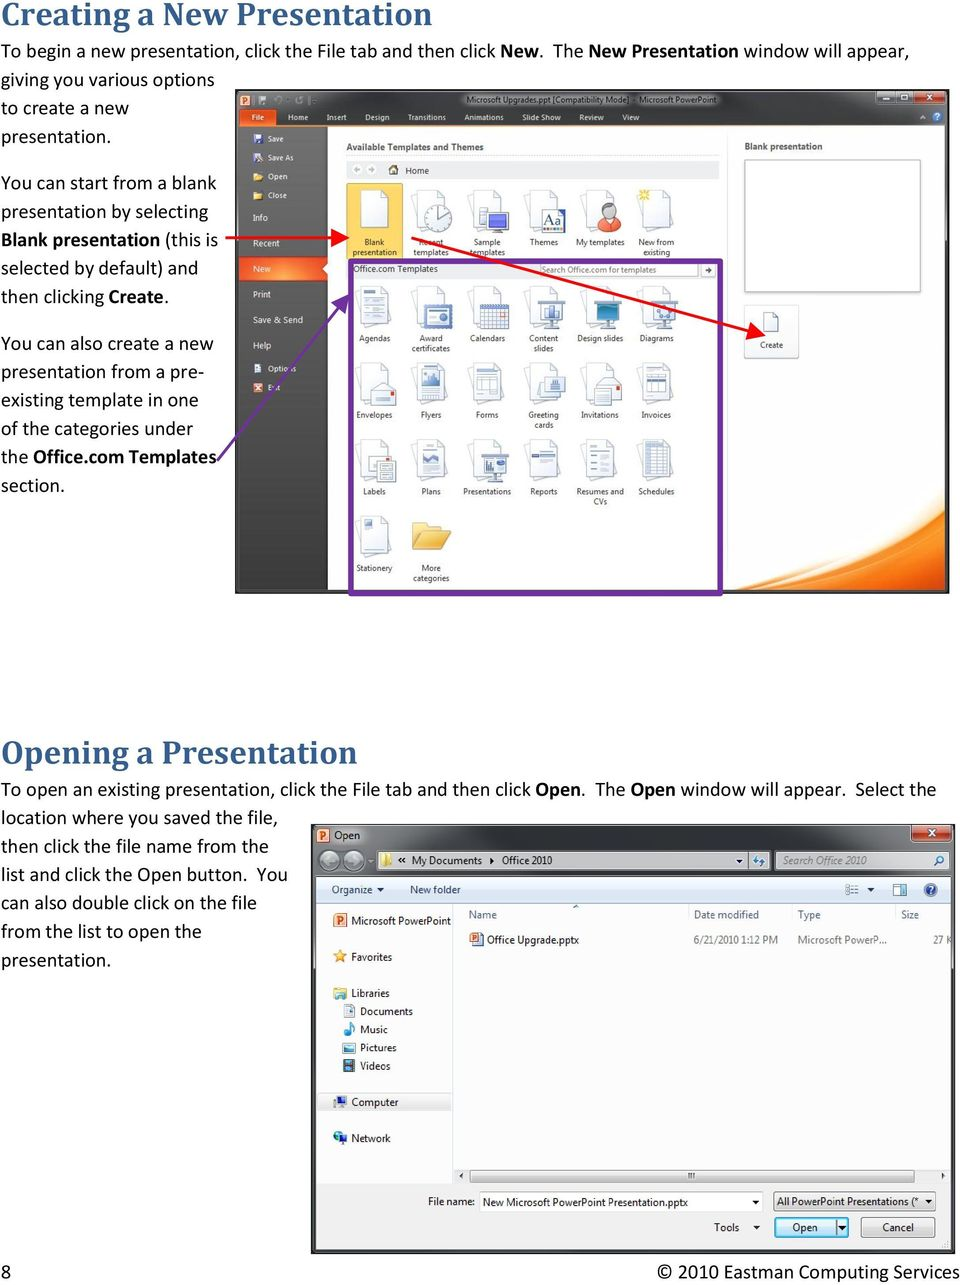 You can also create a new presentation from a preexisting template in one of the categories under the Office.com Templates section.